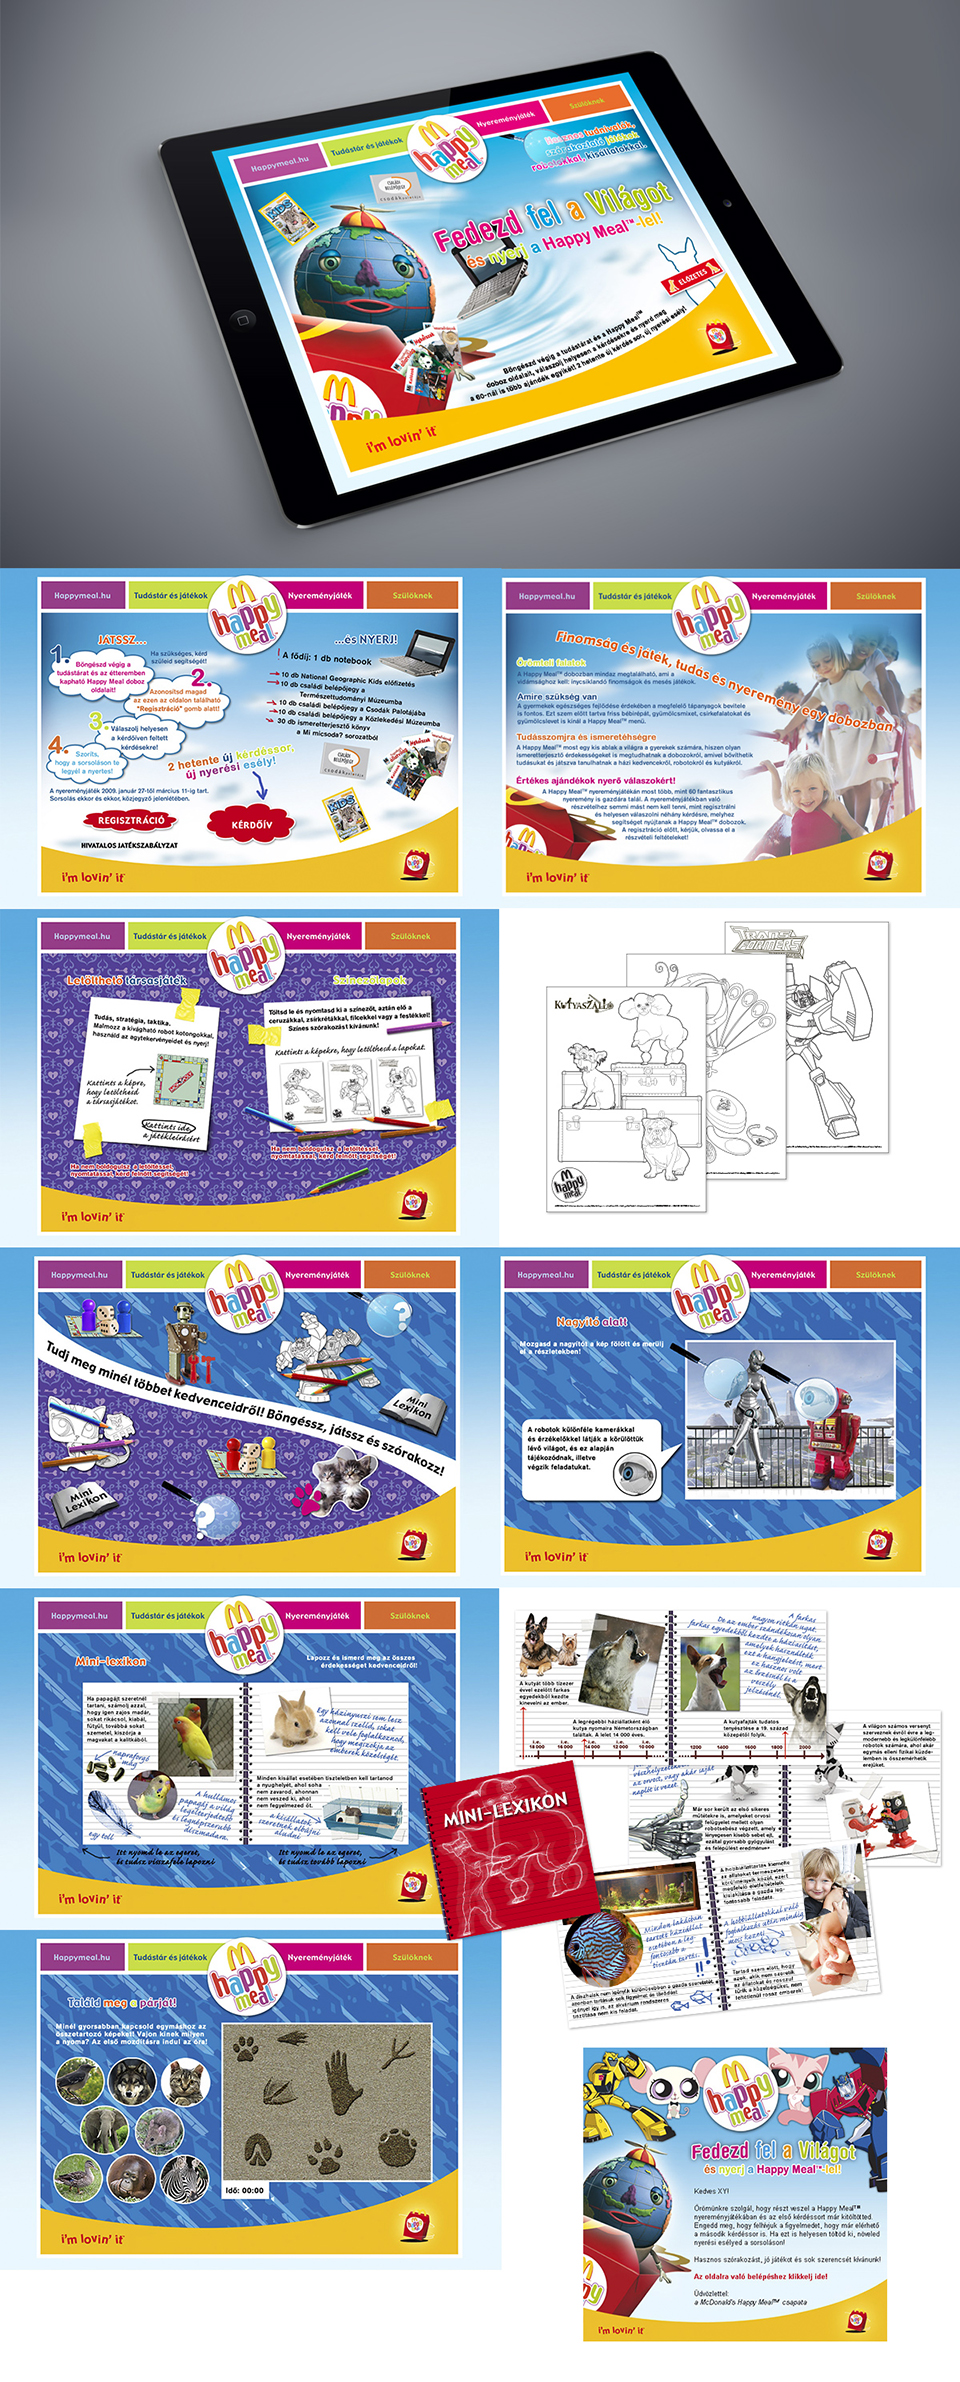 McDonalds Happy Meal microsite